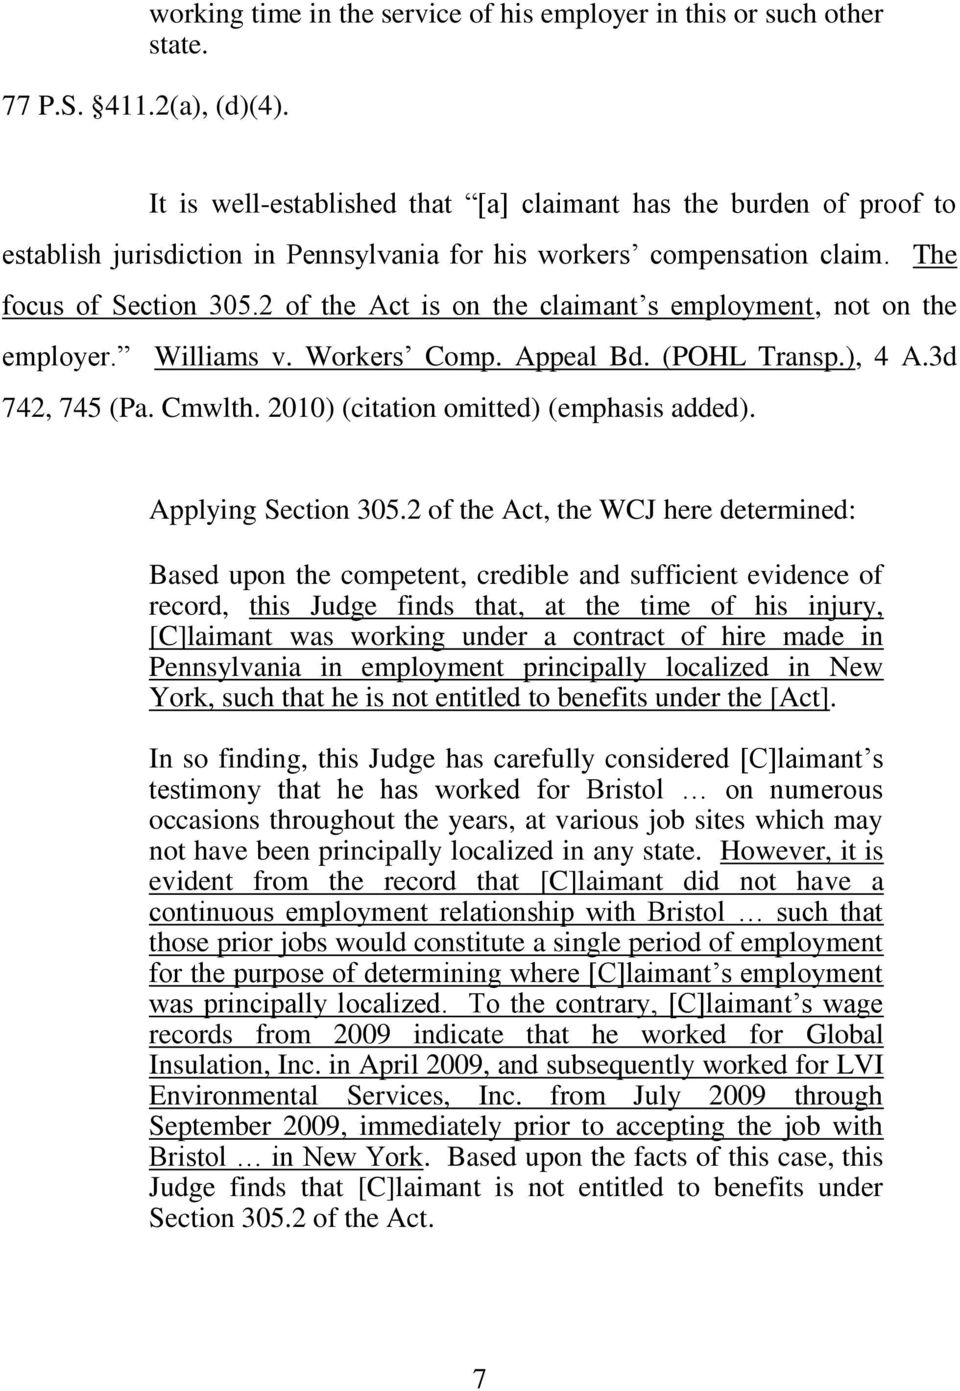 2 of the Act is on the claimant s employment, not on the employer. Williams v. Workers Comp. Appeal Bd. (POHL Transp.), 4 A.3d 742, 745 (Pa. Cmwlth. 2010) (citation omitted) (emphasis added).